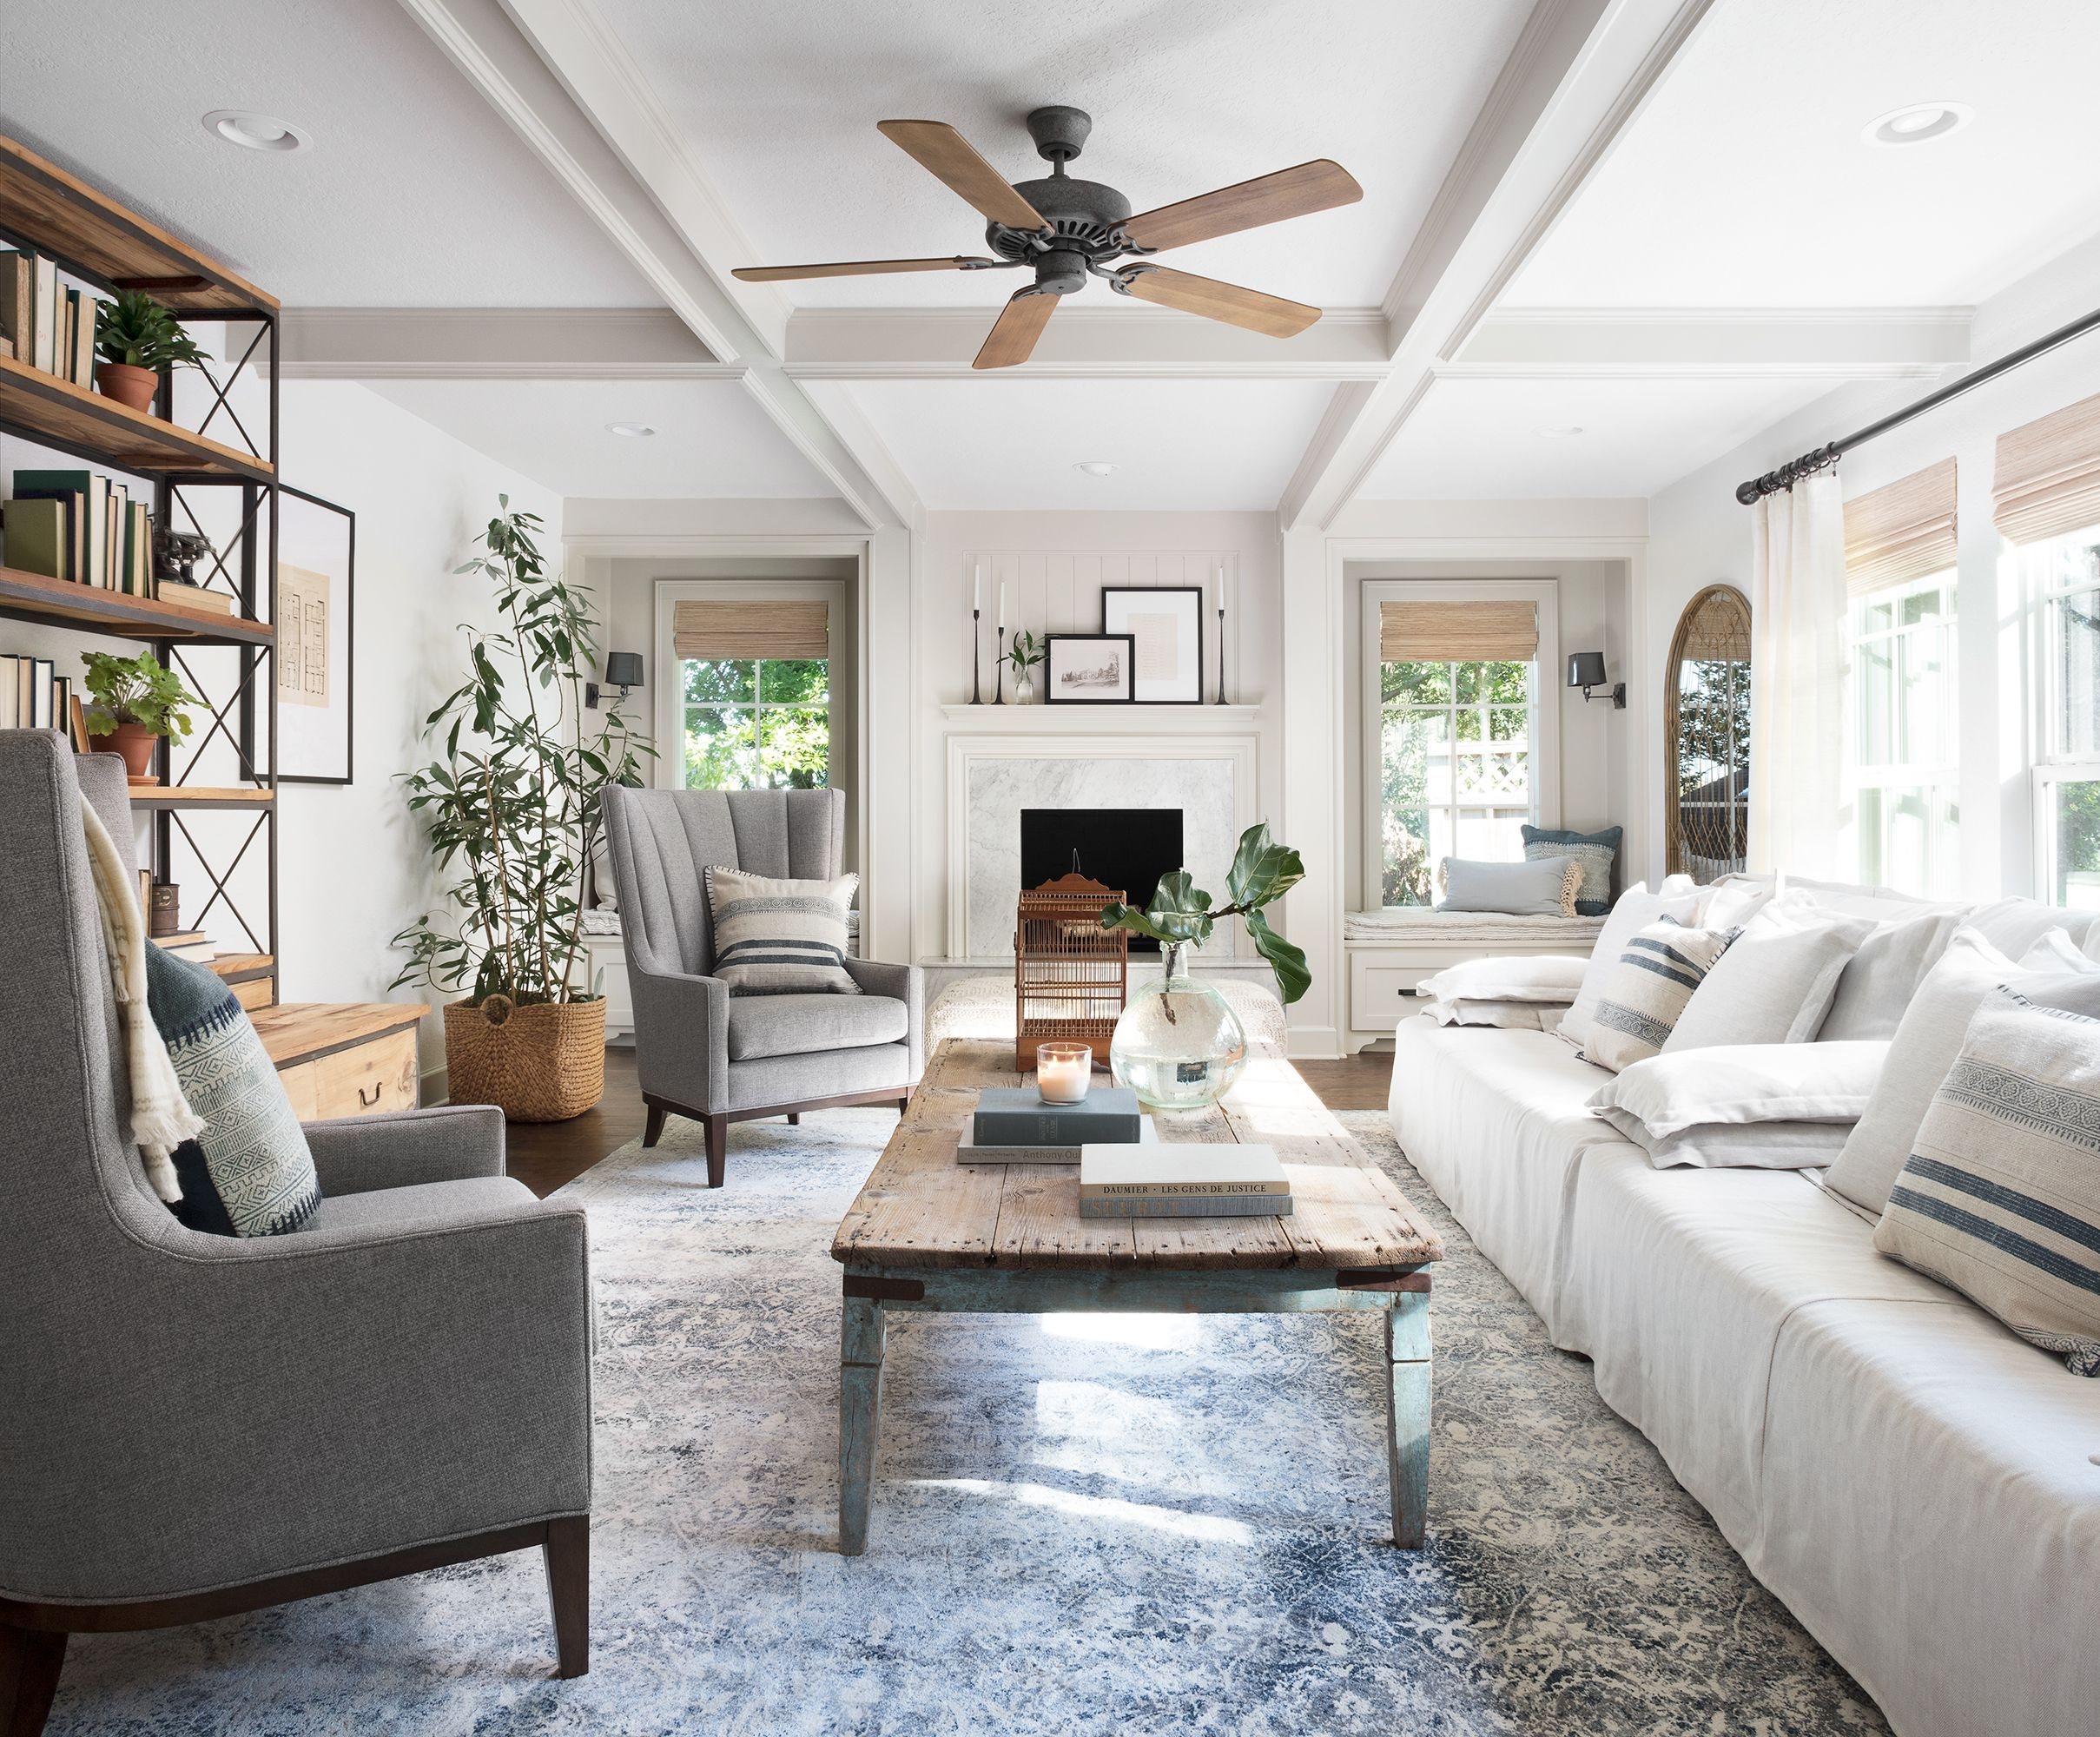 Fixer Upper design tips from Jo | Living rooms, Room and Room lamp